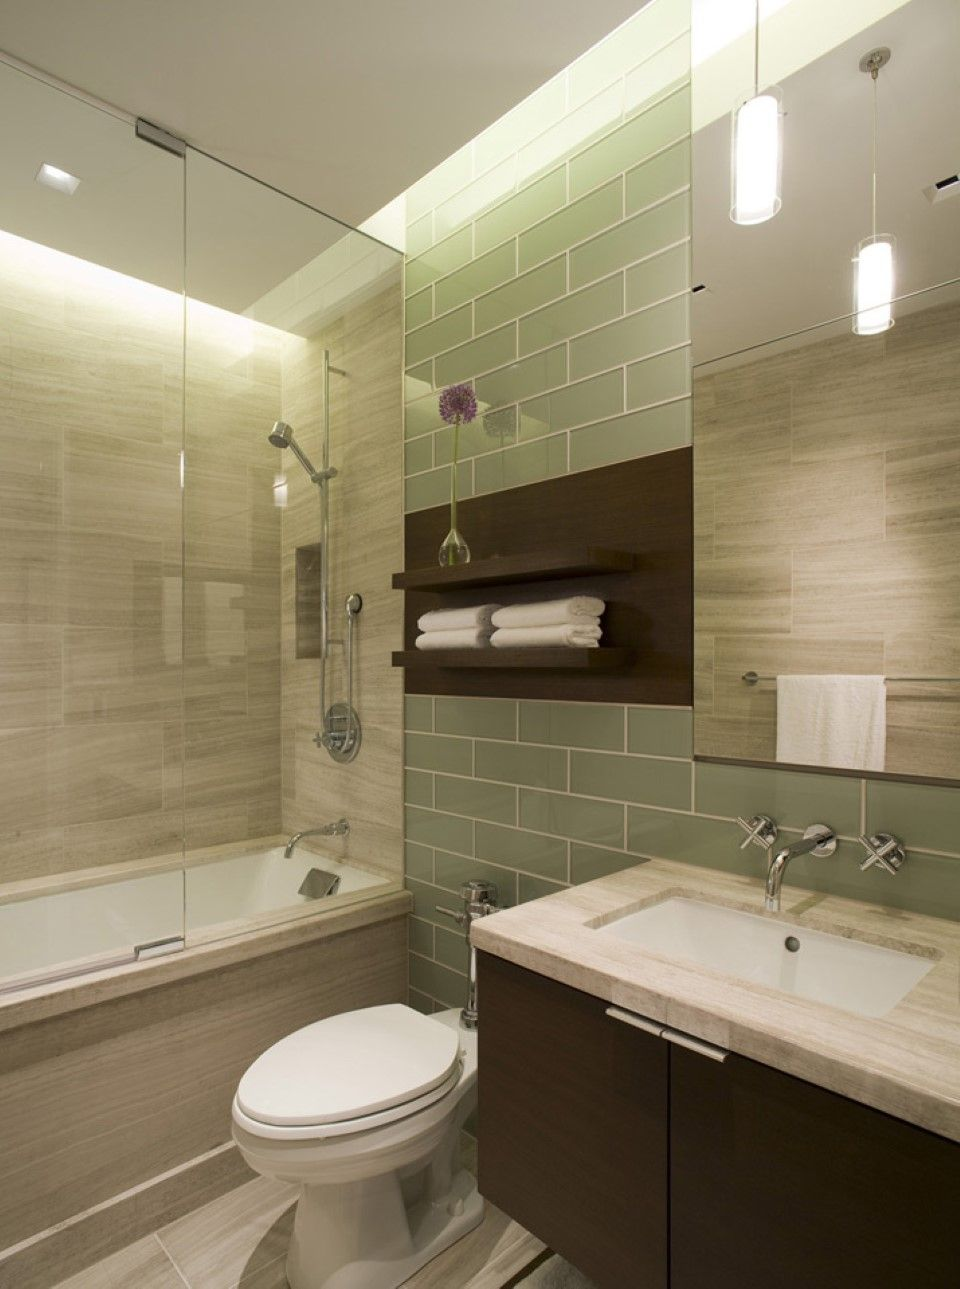 Picture of minimalist wall shelves over toilet seat in spa Contemporary bathrooms